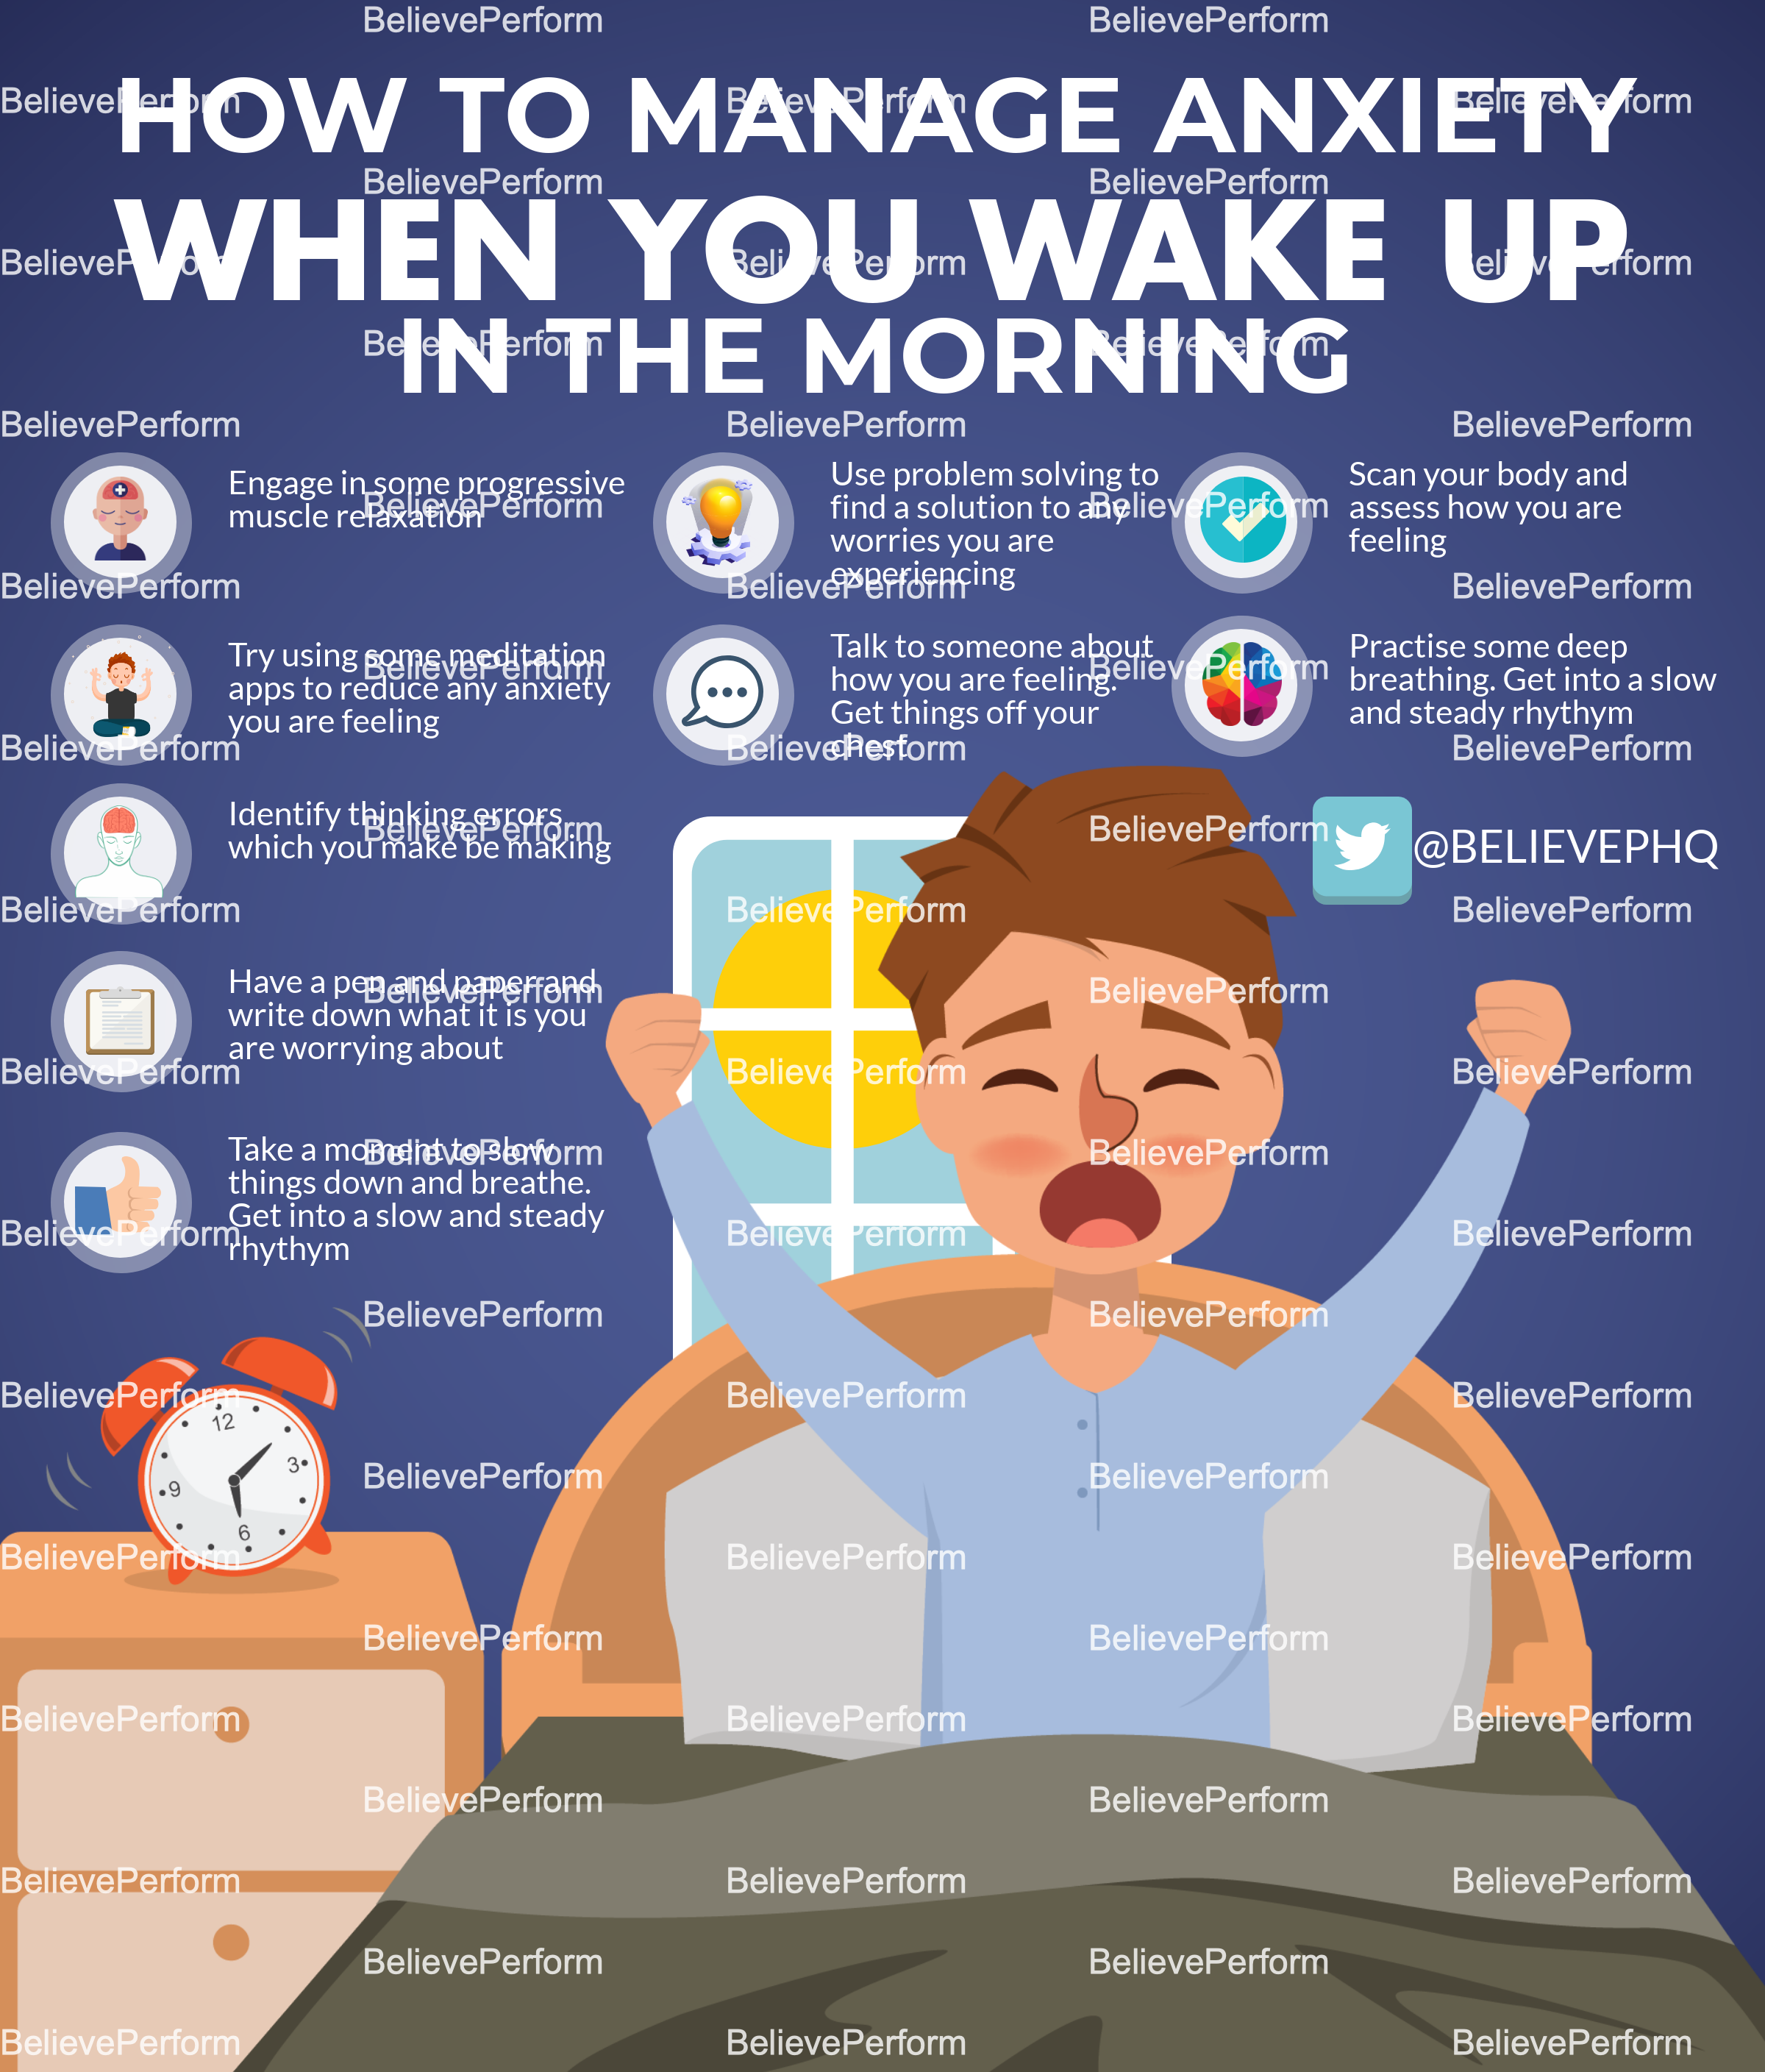 How to manage anxiety when you wake up in the morning